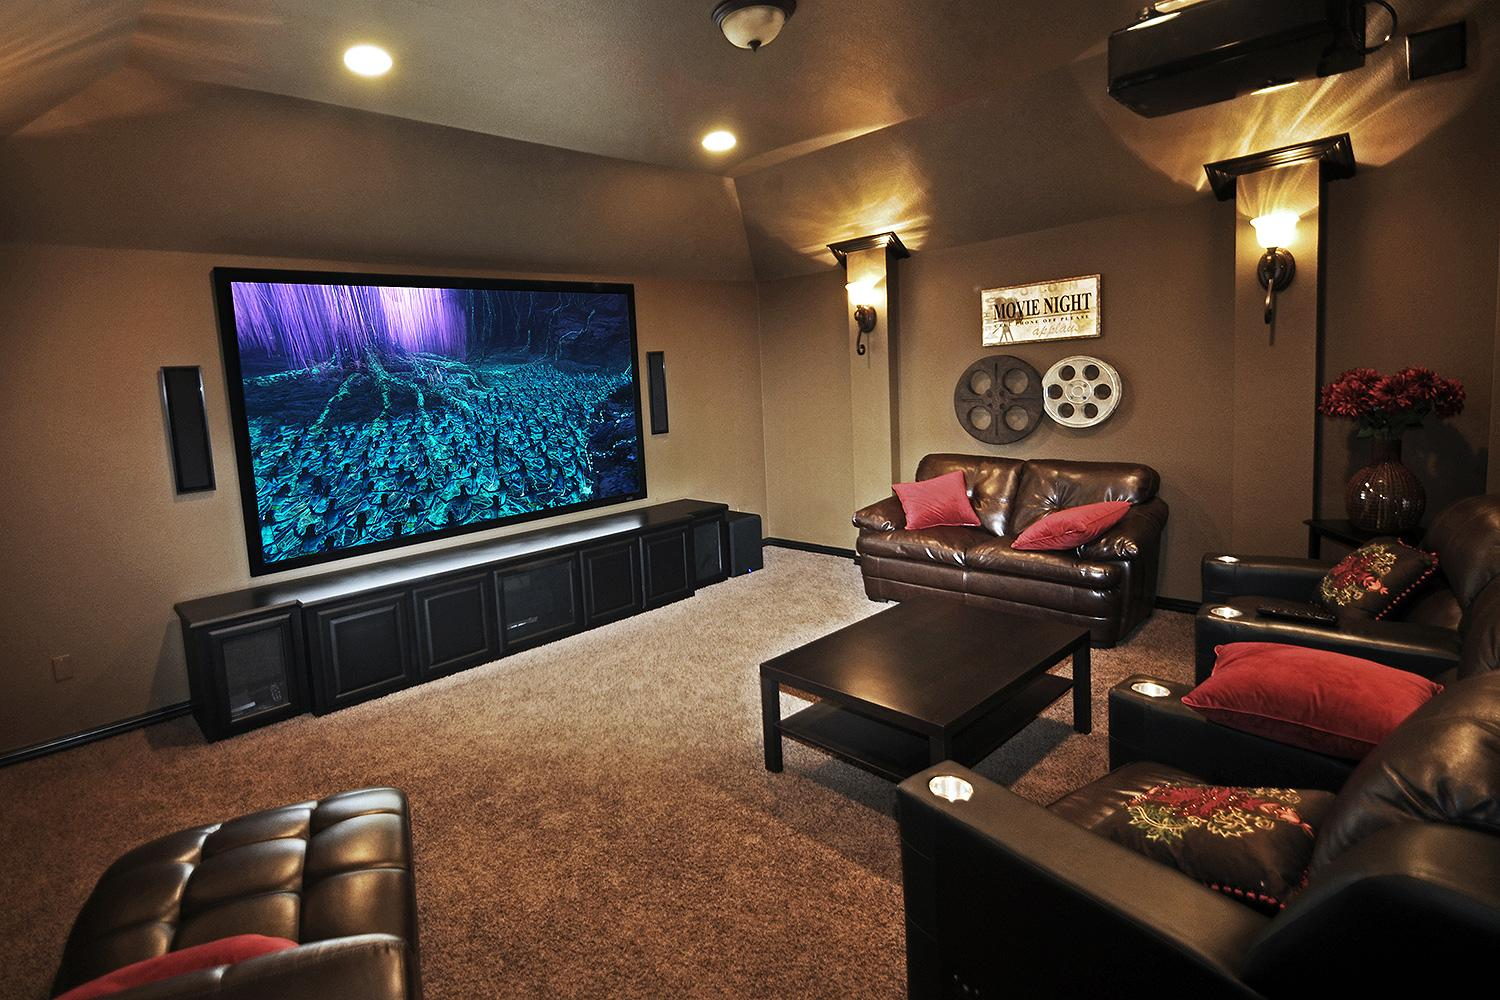 Michigan based Home Theater Design & Installation